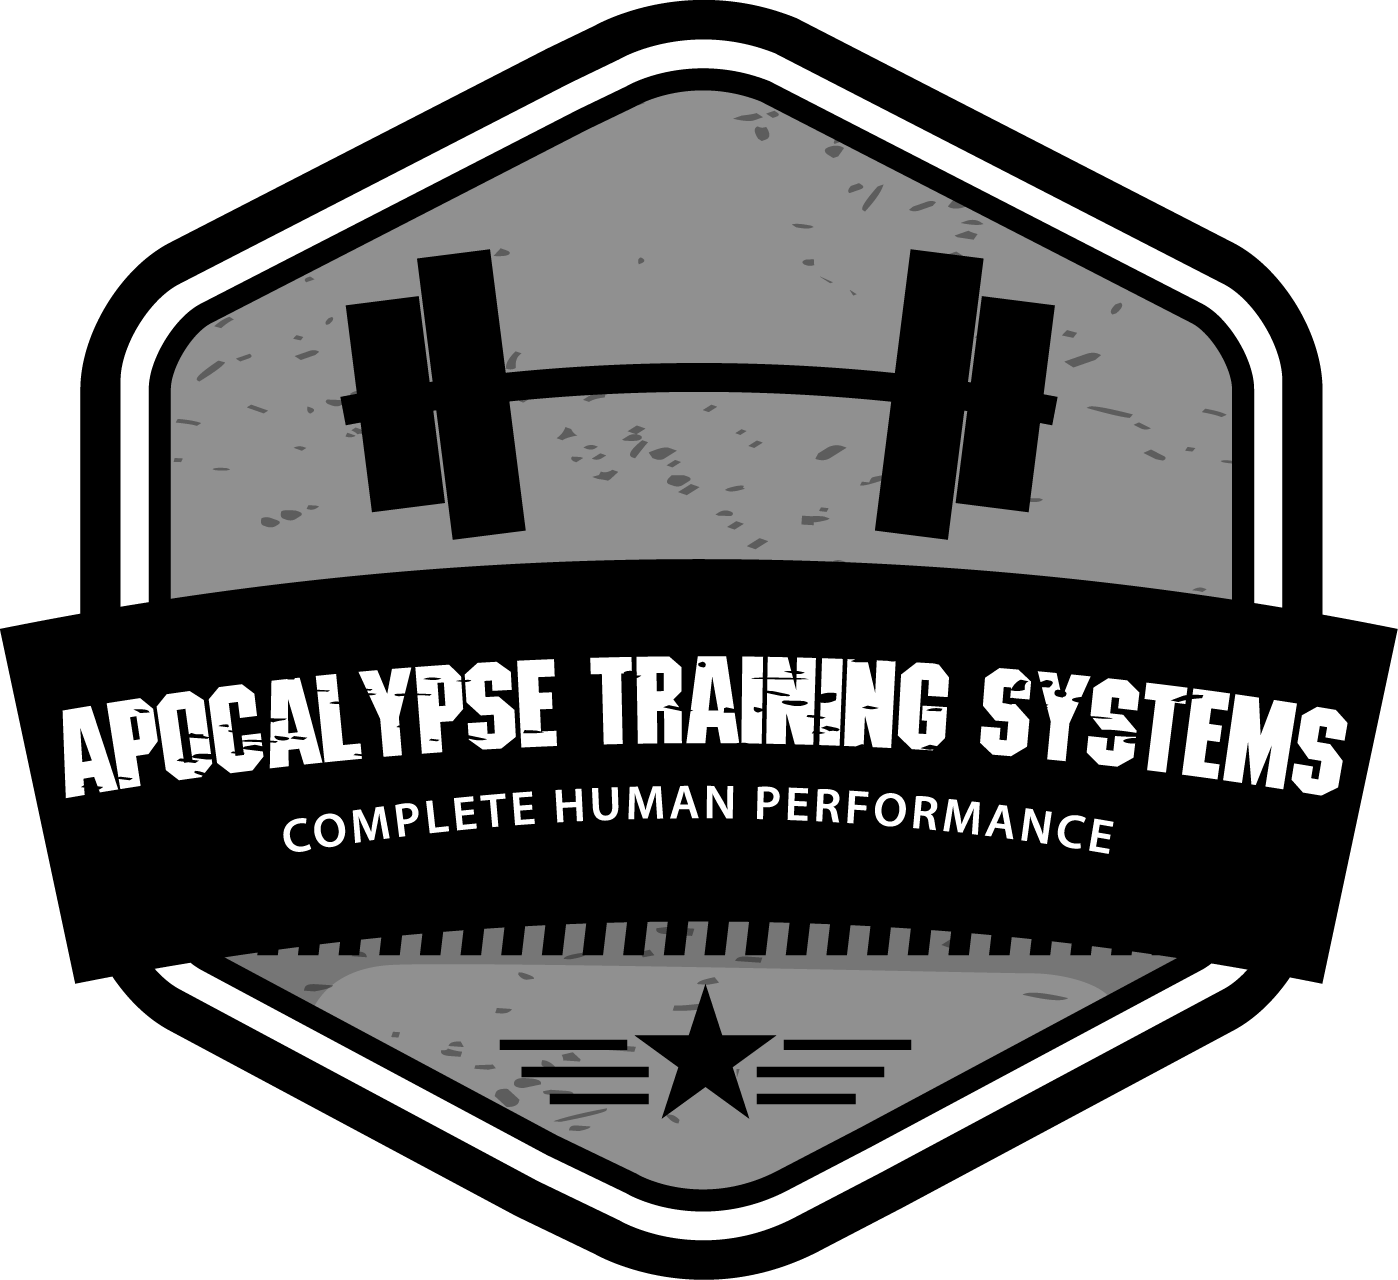 APOCALYPSE TRAINING SYSTEMS